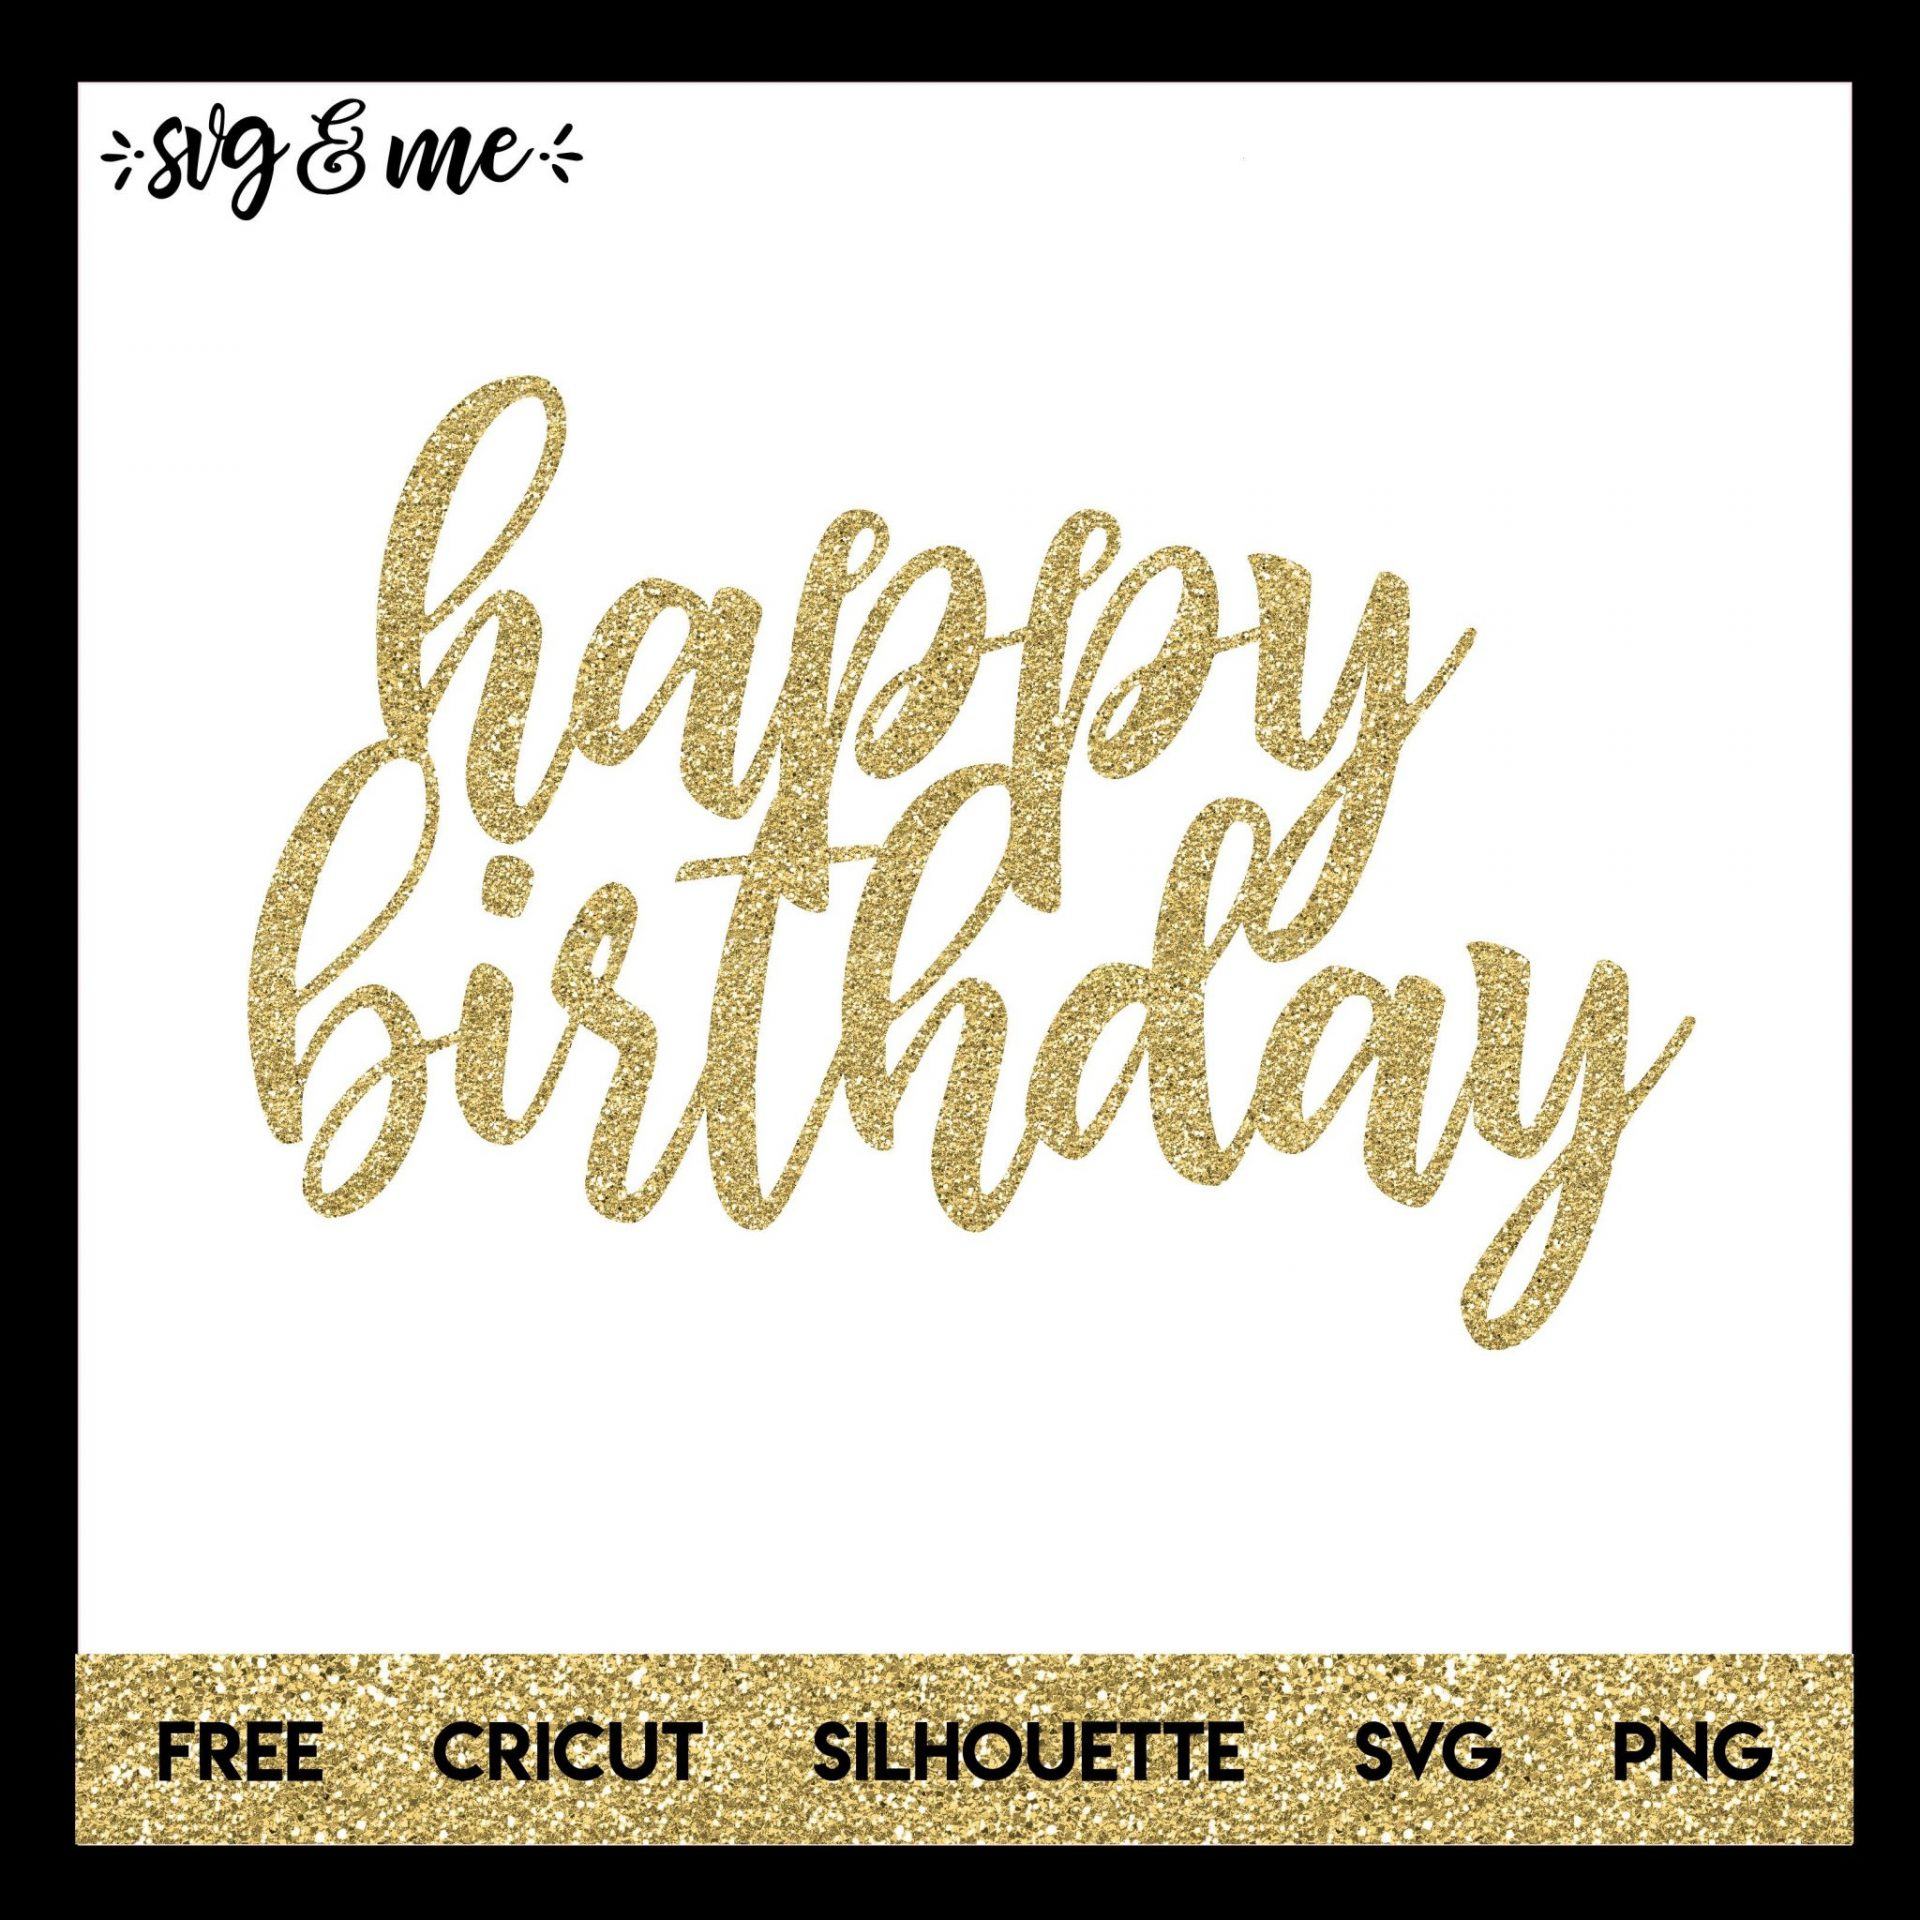 Happy Birthday Cake Topper - Svg & Me - Free Printable Happy Birthday Cake Topper